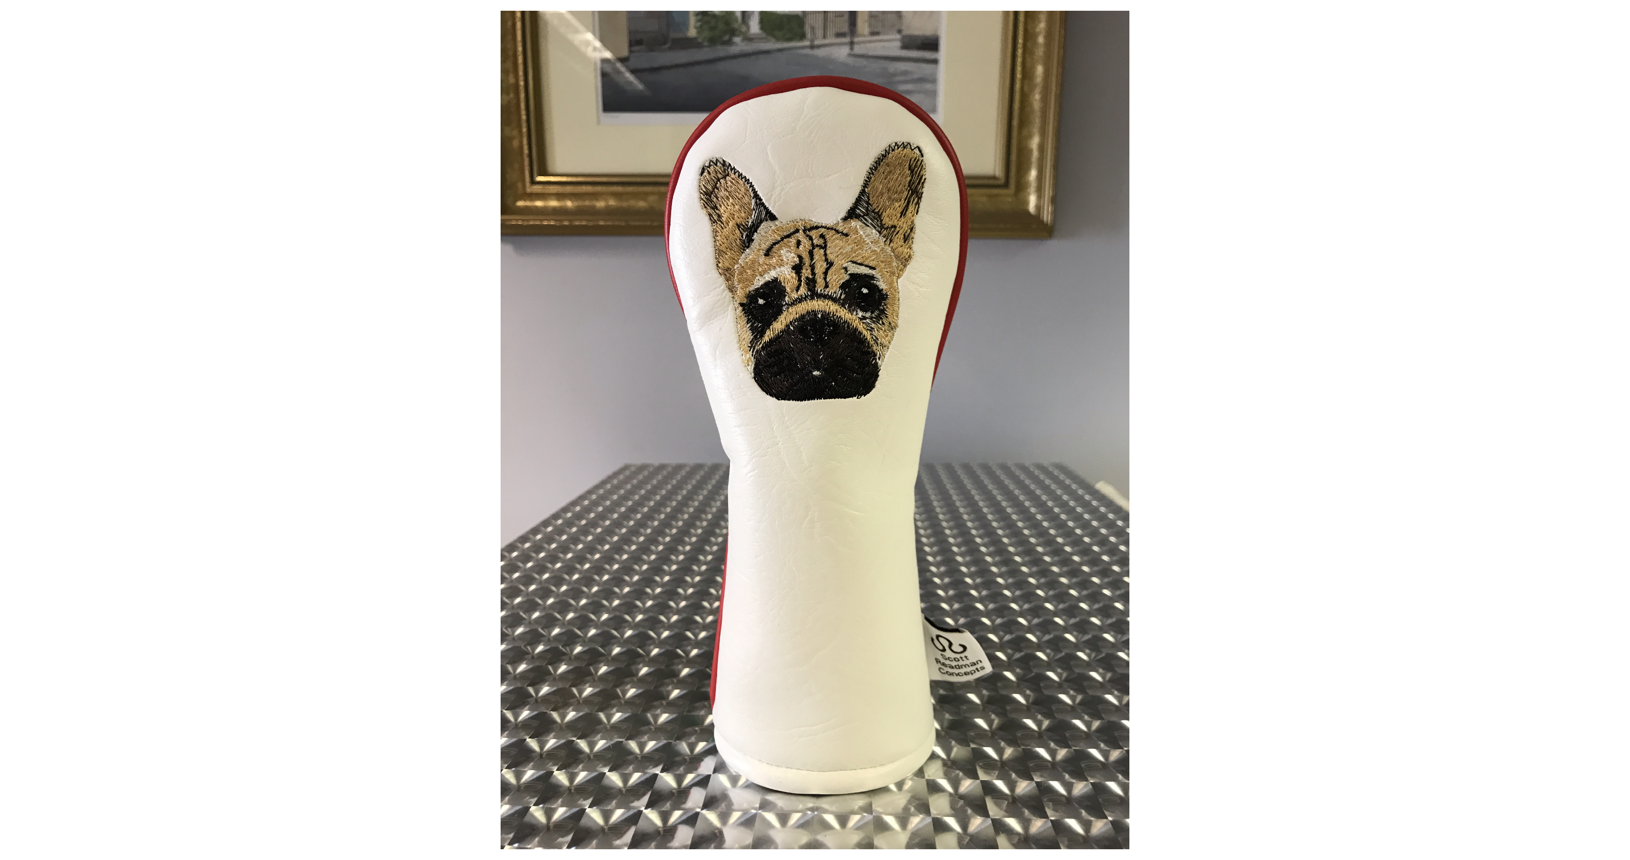 golf-shop-bespoke-custom-personalised-headcovers-putters-dog-shop